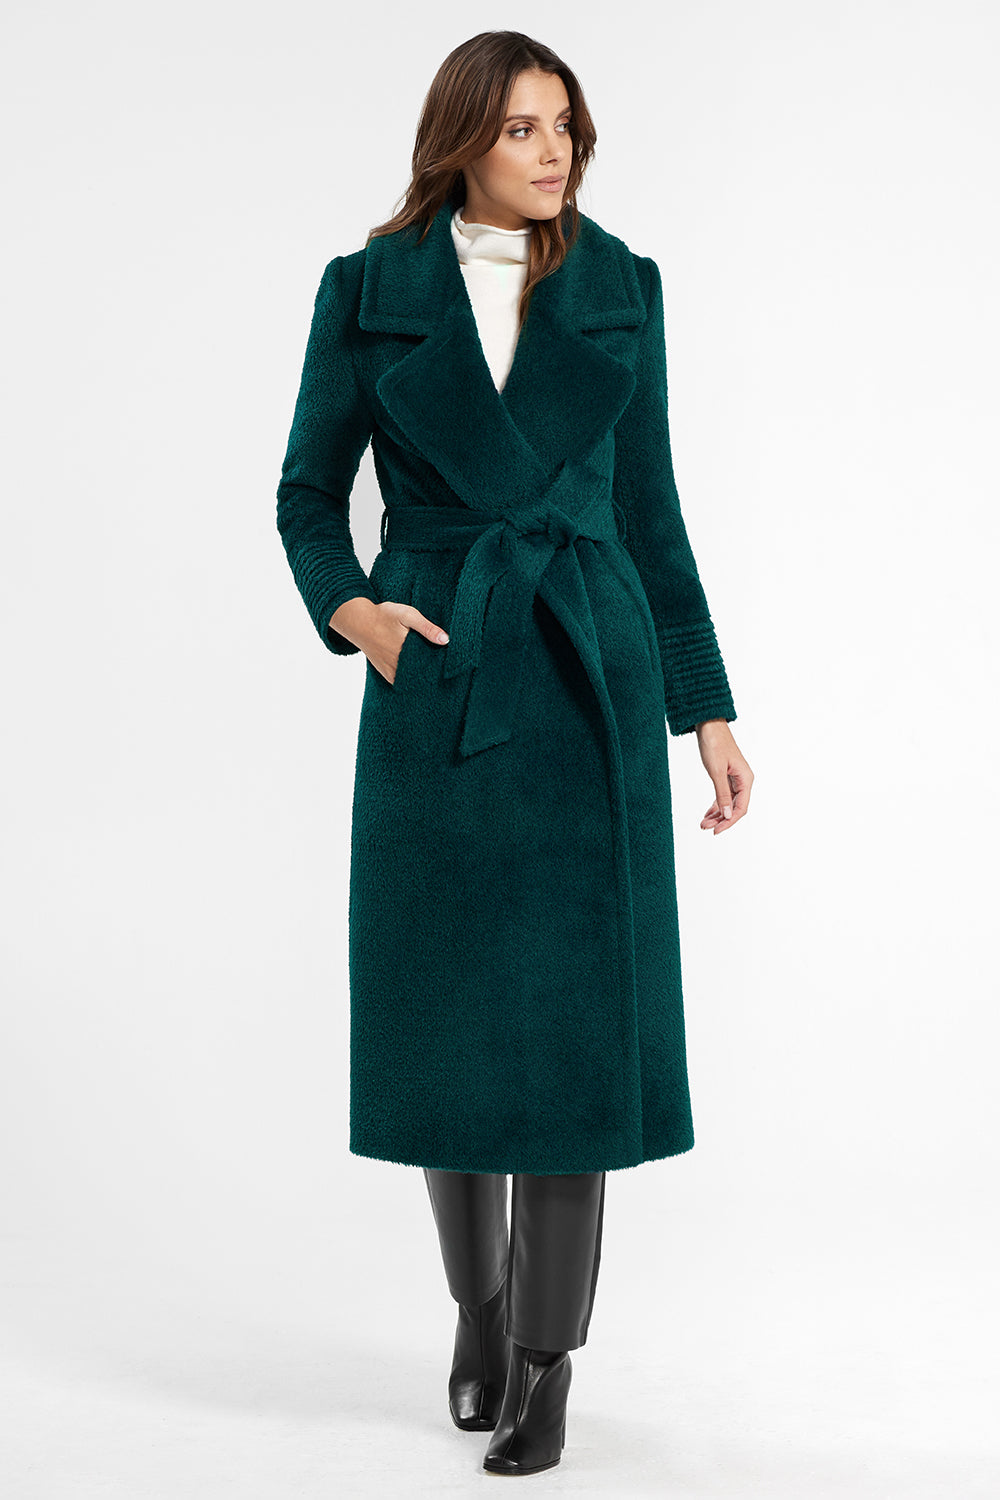 Sentaler Bouclé Alpaca Long Notched Collar Wrap Coat featured in Bouclé Alpaca and available in Emerald Green. Seen from front.